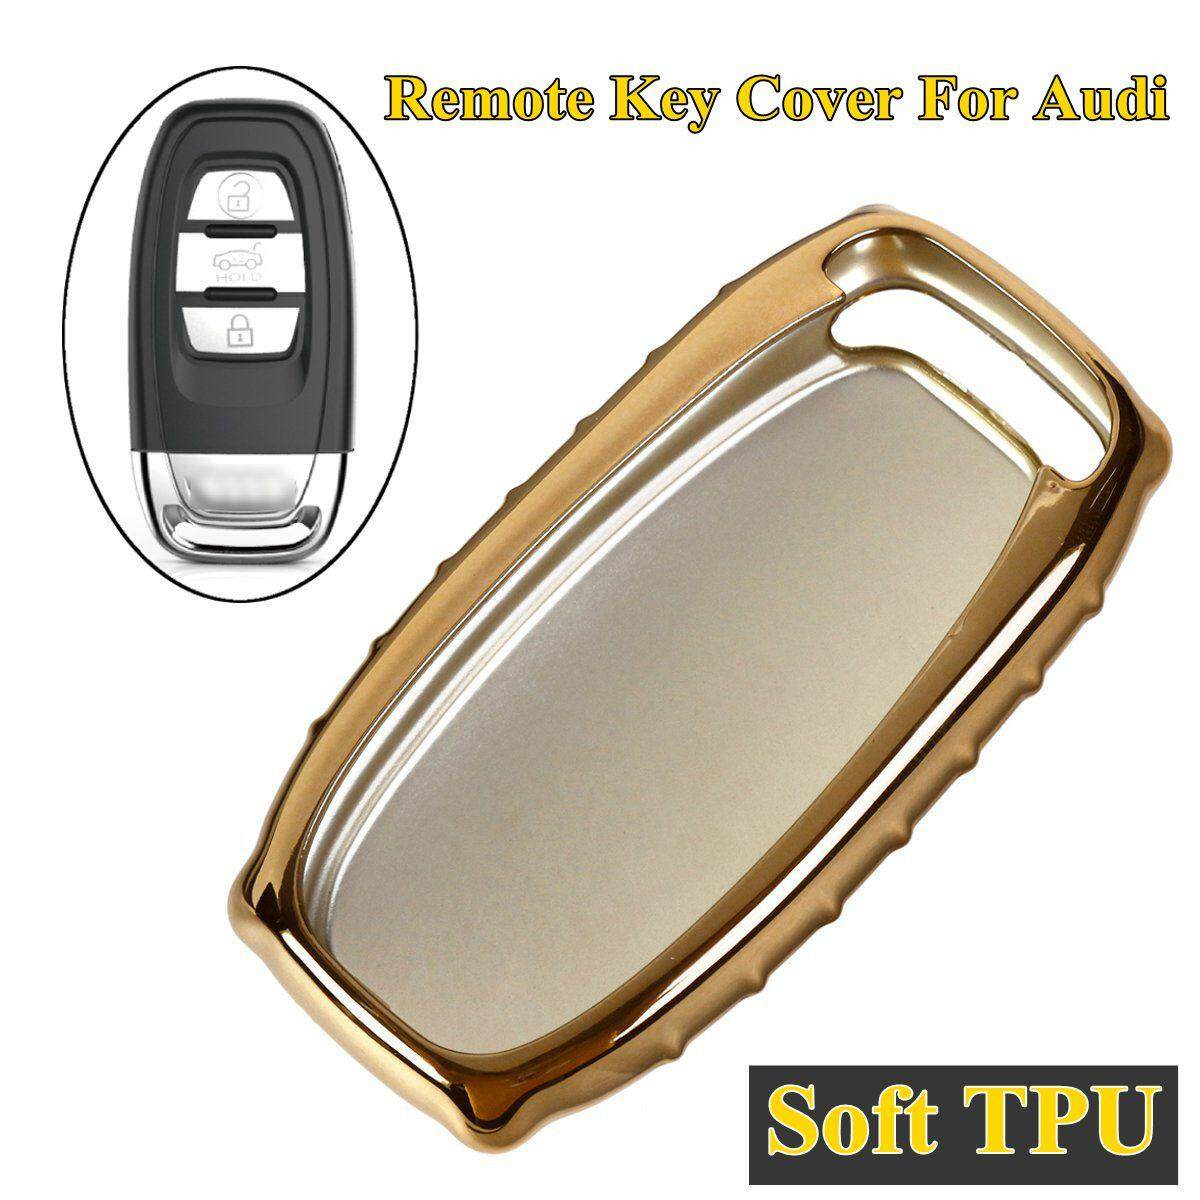 Tpu Remote Key Cover Case Shell For Audi A4 A5 A6 Q5 Rs7 S7 A7 A8 Q5 S5 S6 (gold) By Teamwin.